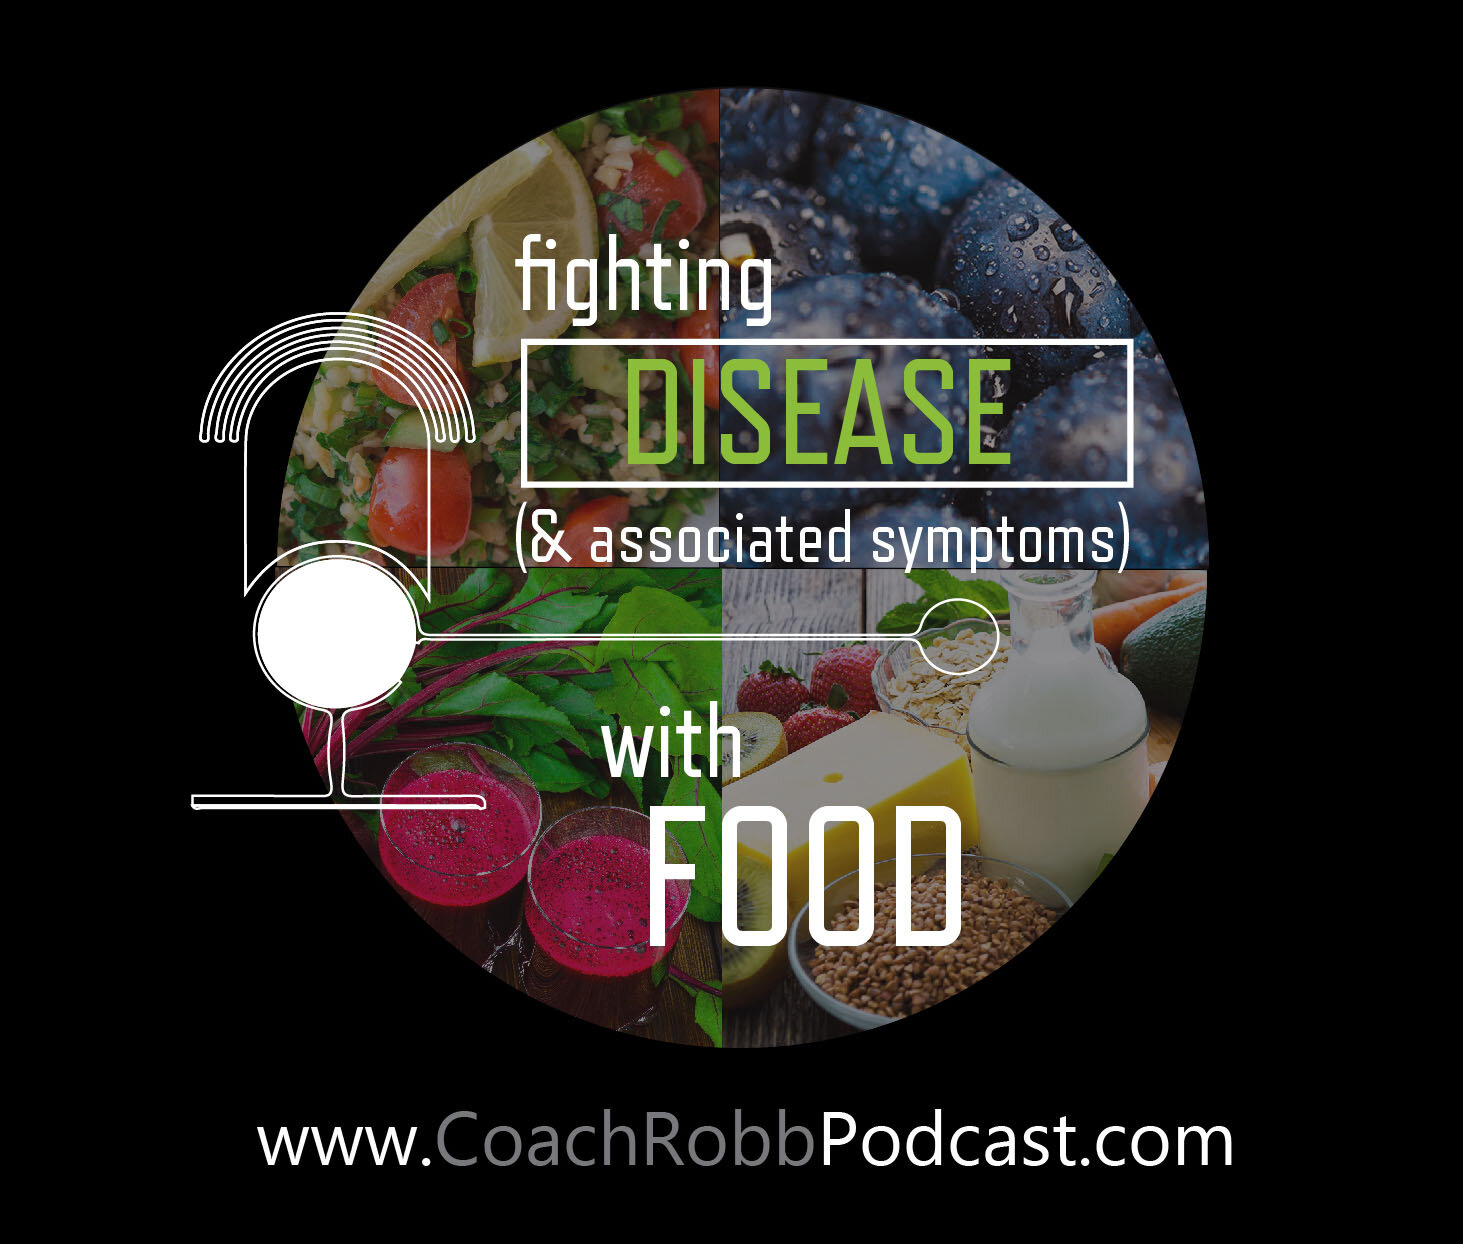 Coach Robb Podcast - Fighting Disease Through Food